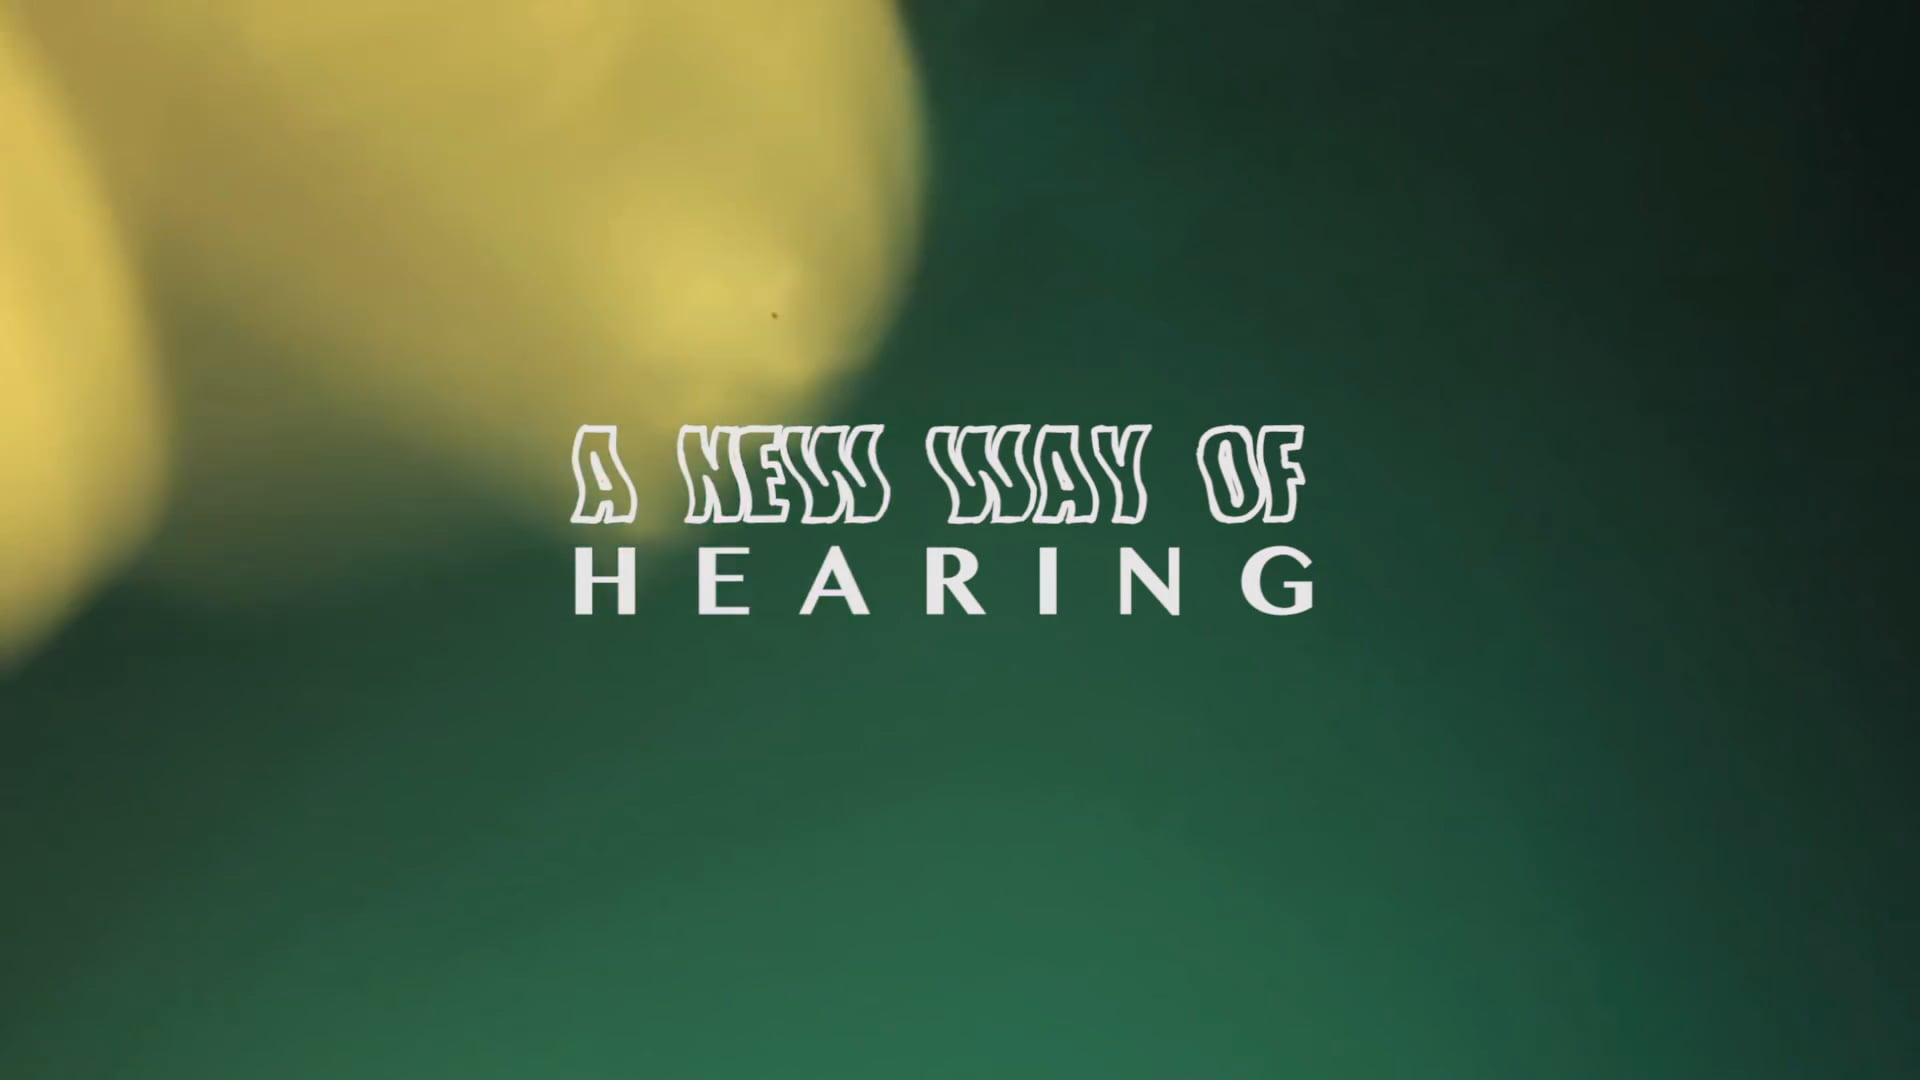 A New Way of Hearing